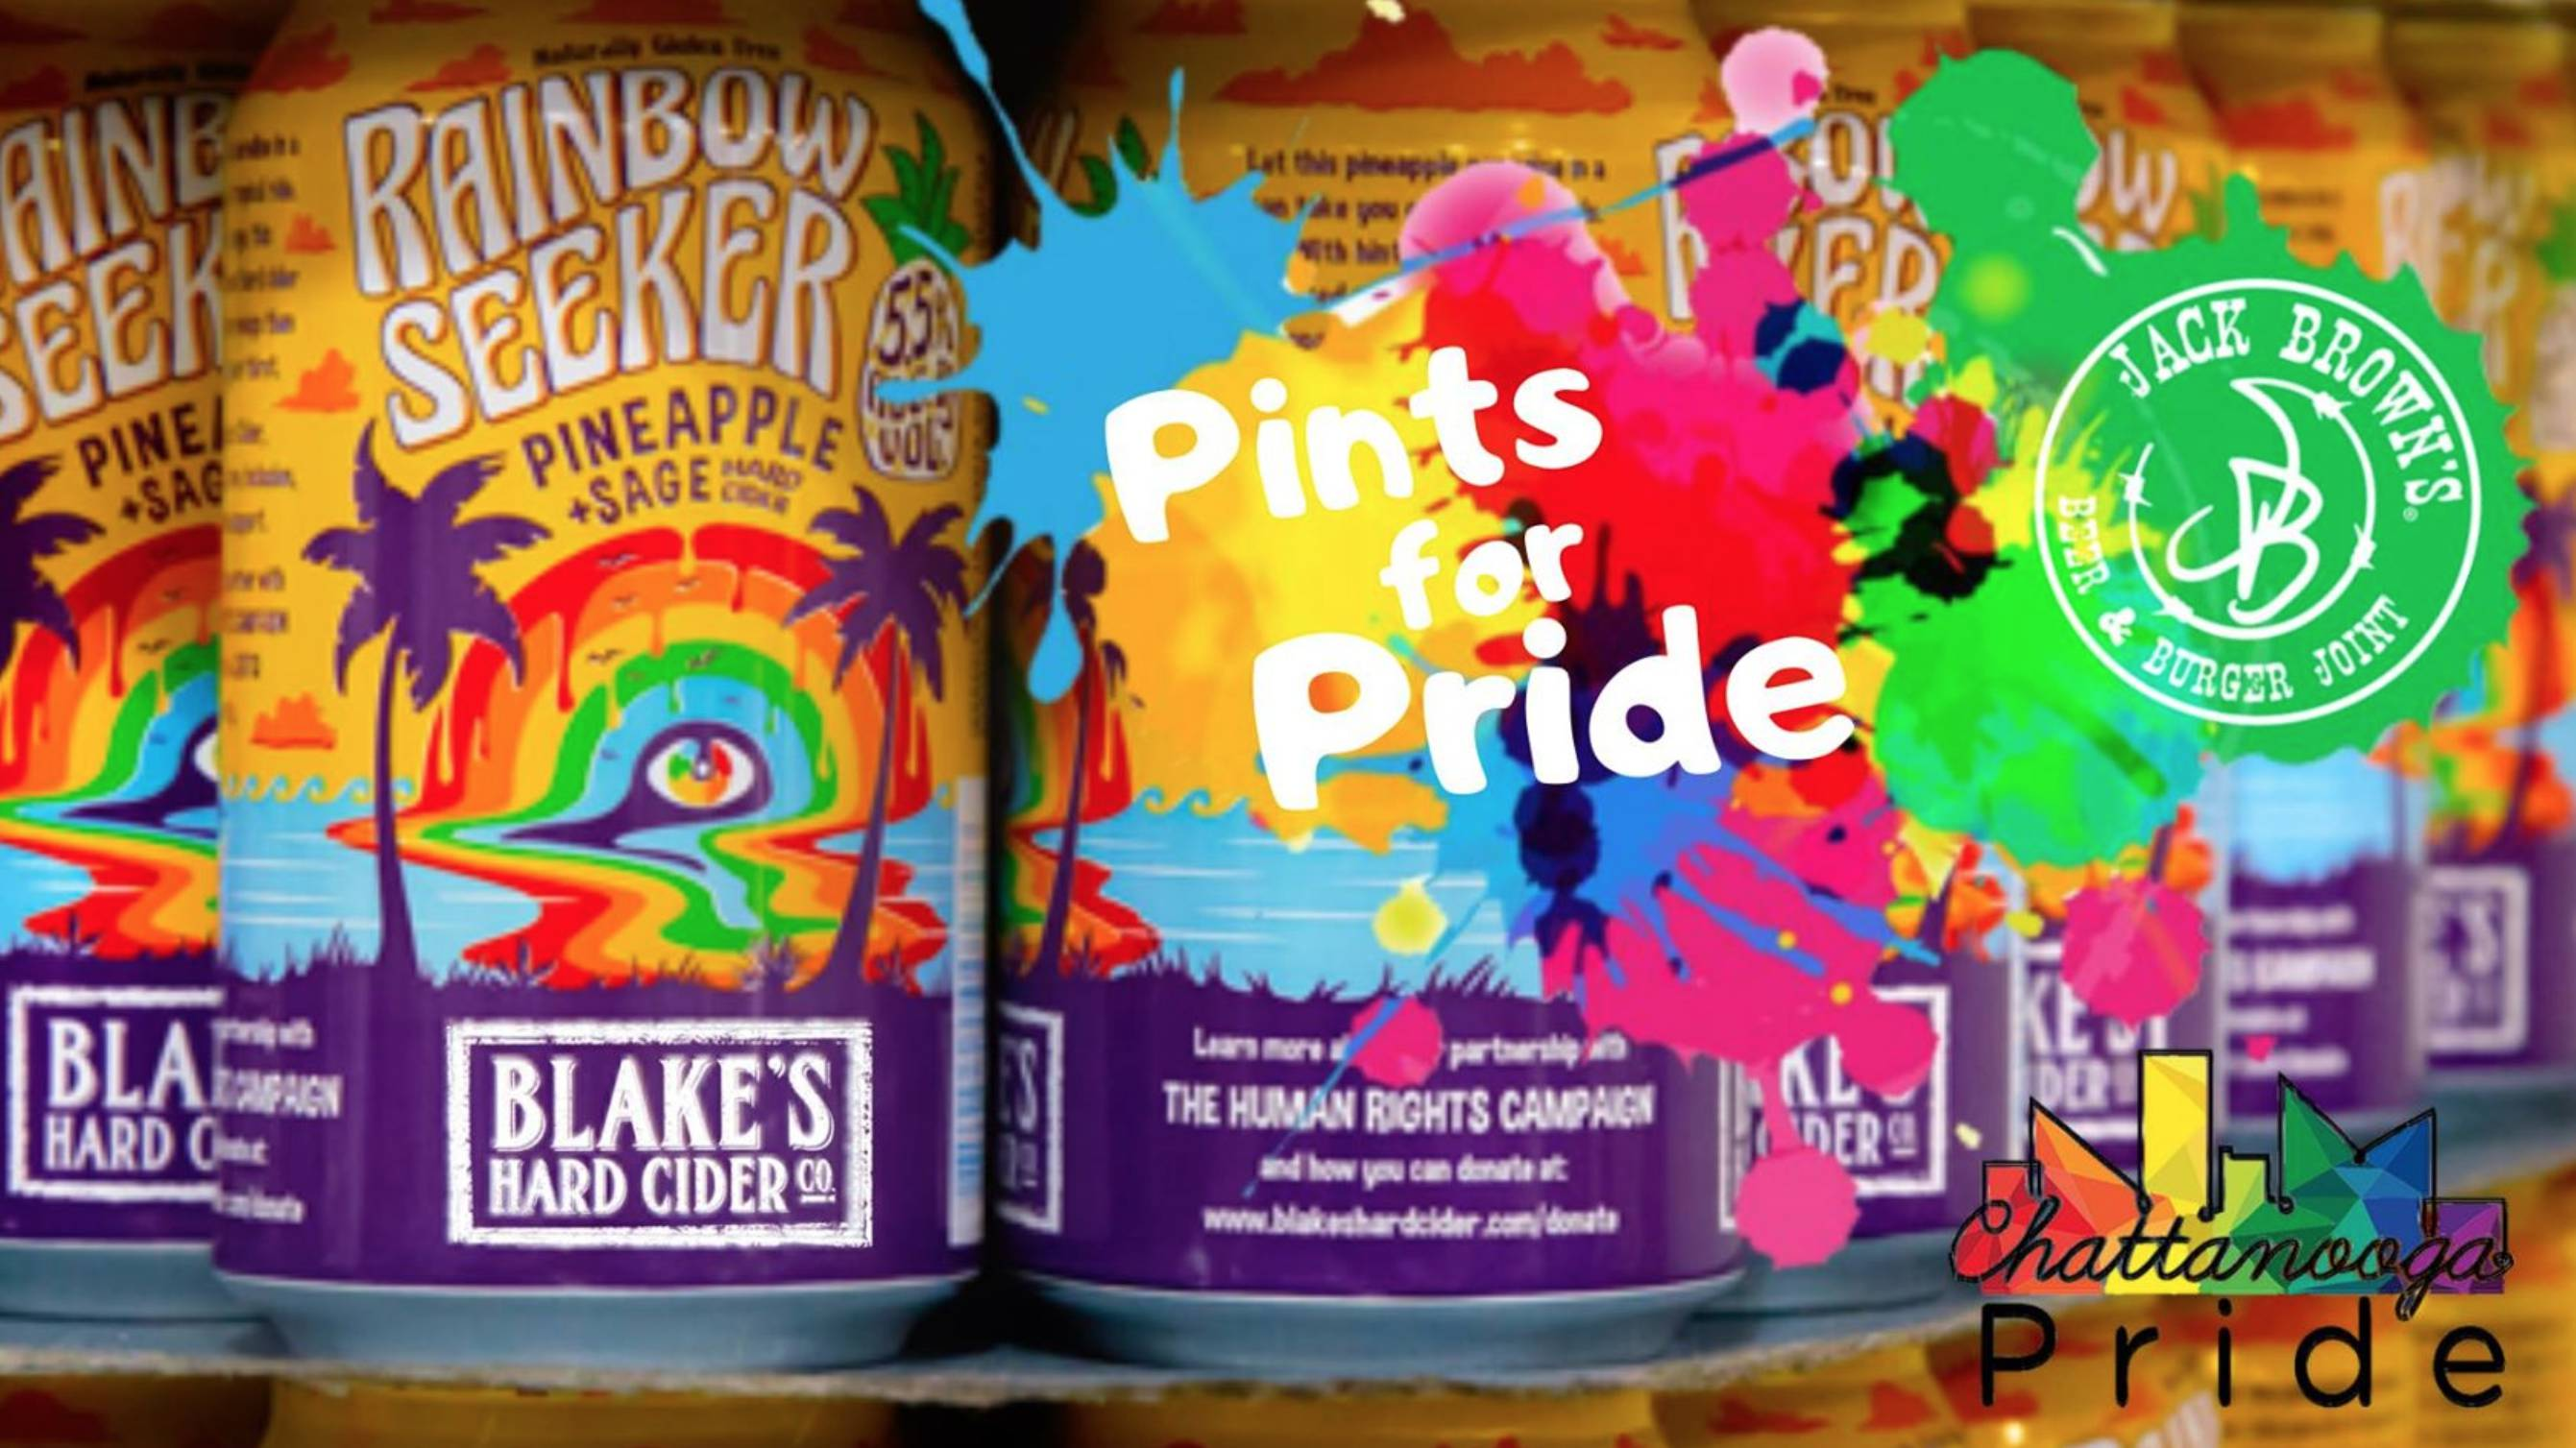 Pints for Pride with Blake's Cider